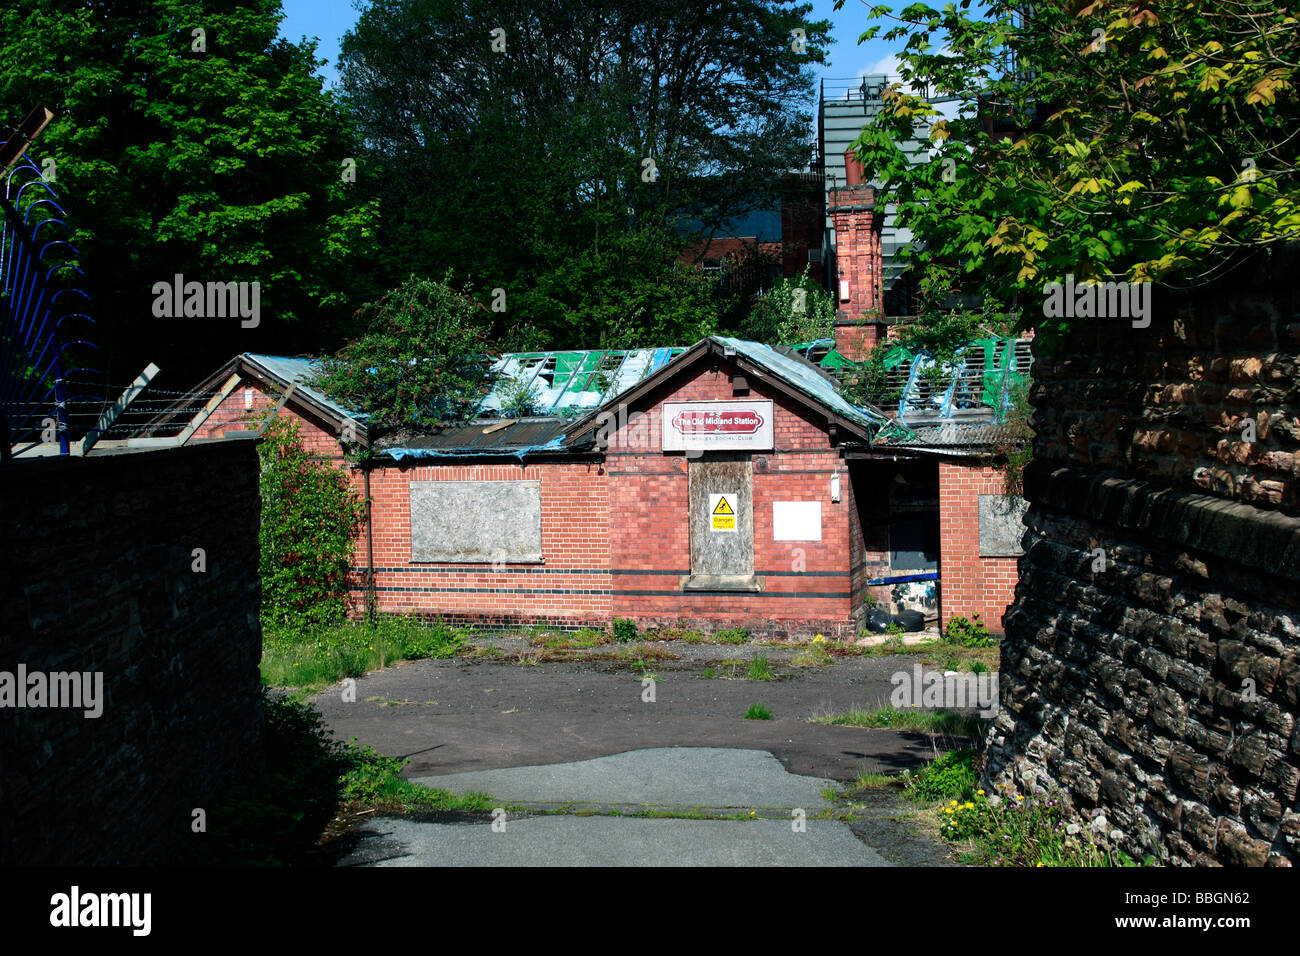 the Old Midland Station Kimberley Social Club It was built in 1882 for the Midland Railways Basford to Bennerley - Stock Image